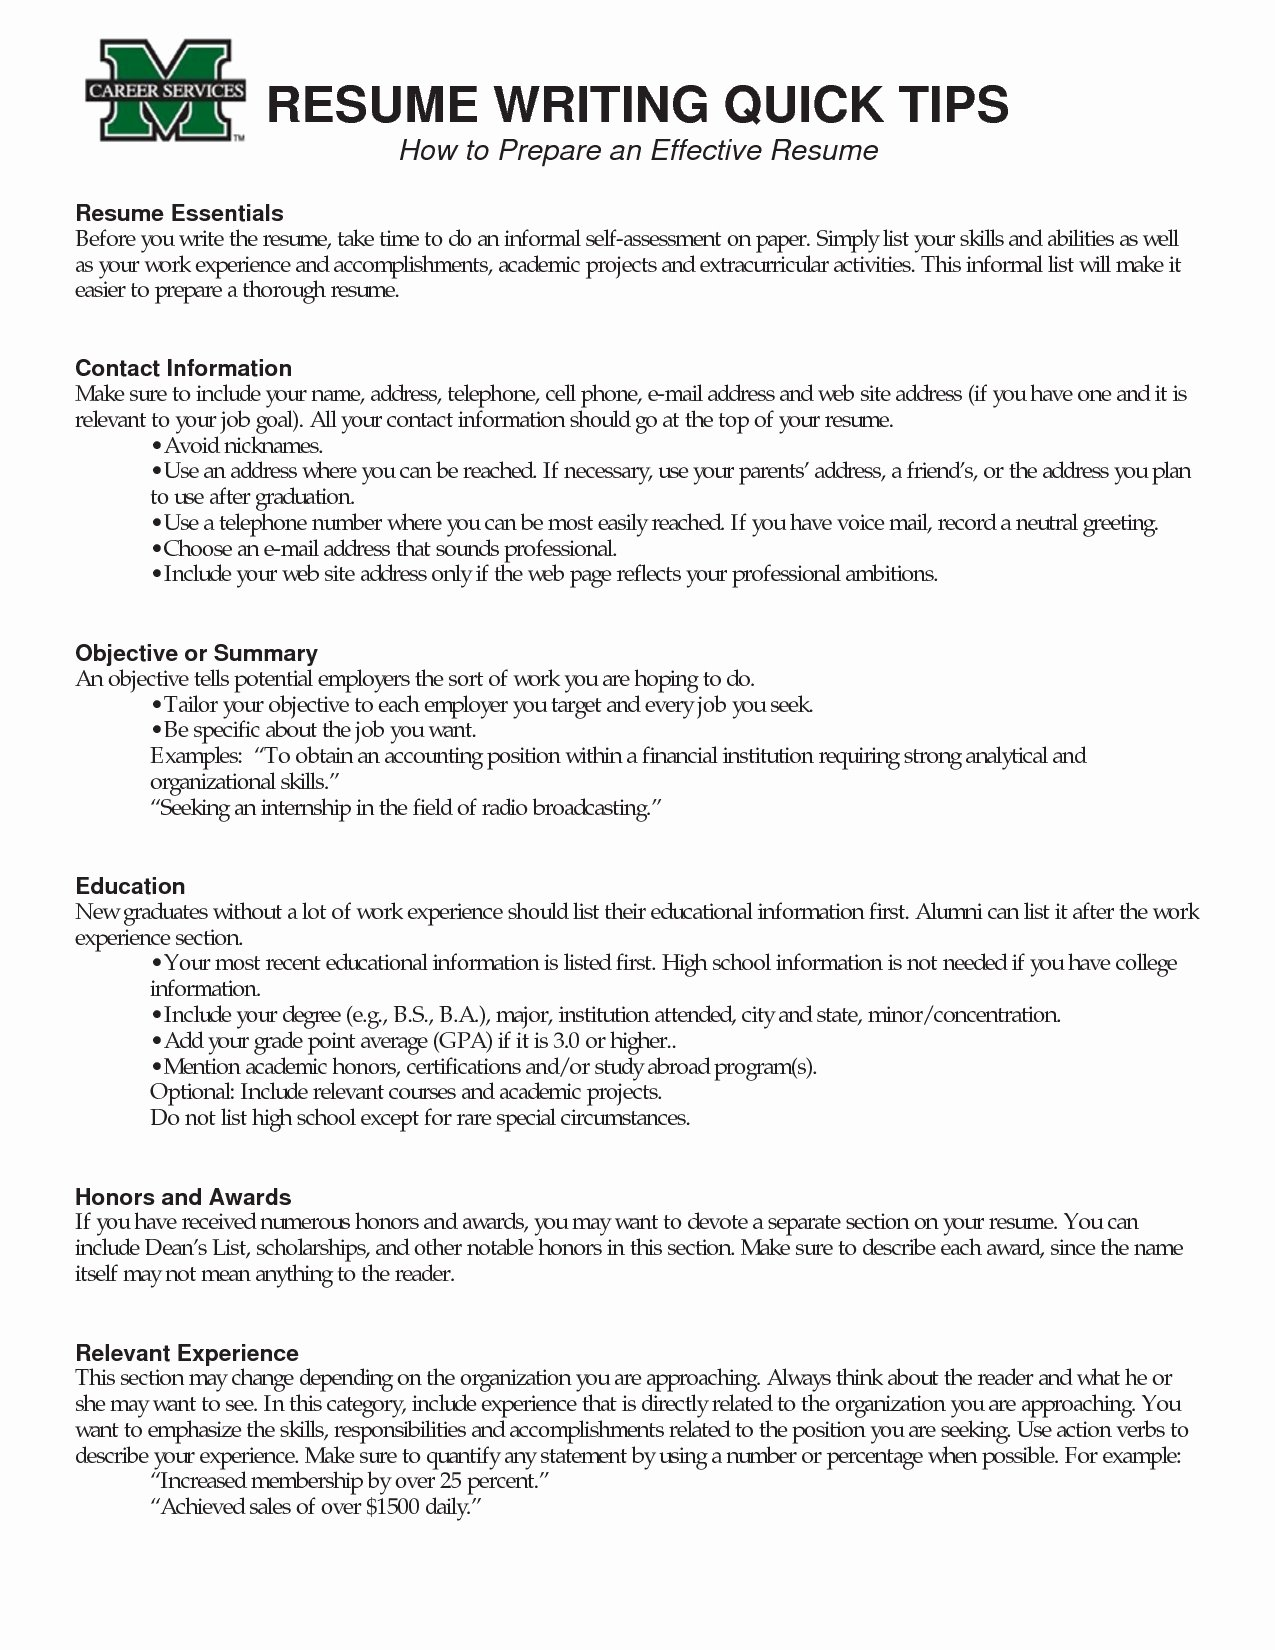 Organizational Skills Resume List Resume Ideas